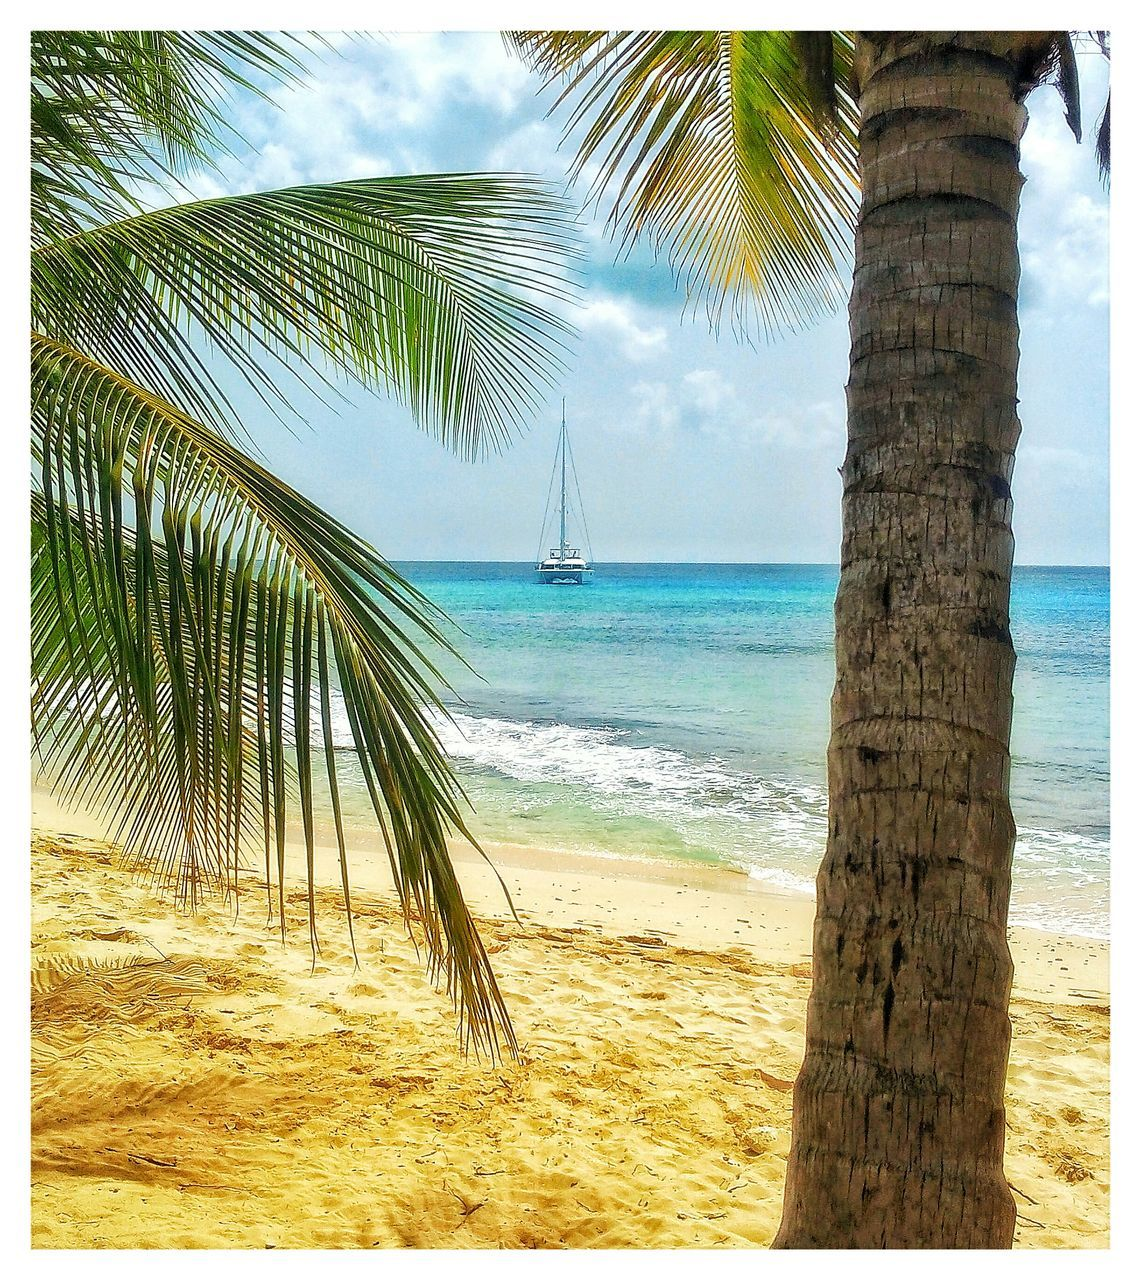 sea, beach, palm tree, tree, tree trunk, nature, beauty in nature, water, sand, scenics, horizon over water, tranquility, tranquil scene, outdoors, sky, no people, day